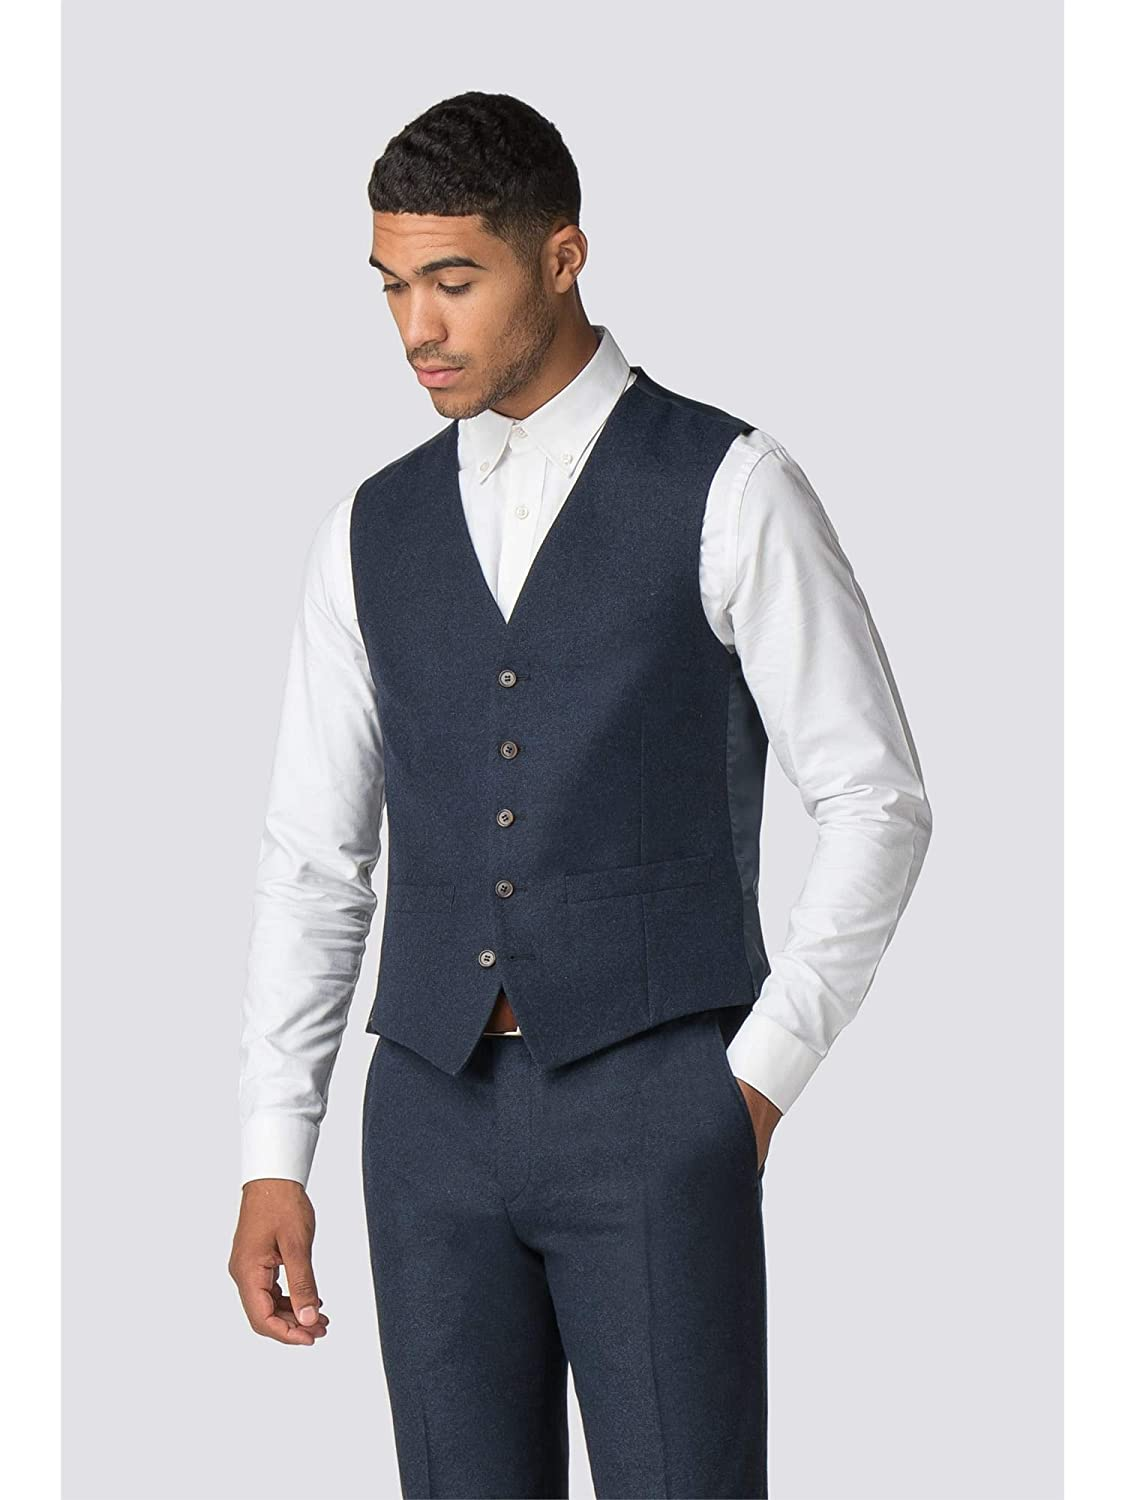 Limehaus Mens Blue Suit Waistcoat in 36R to 46R